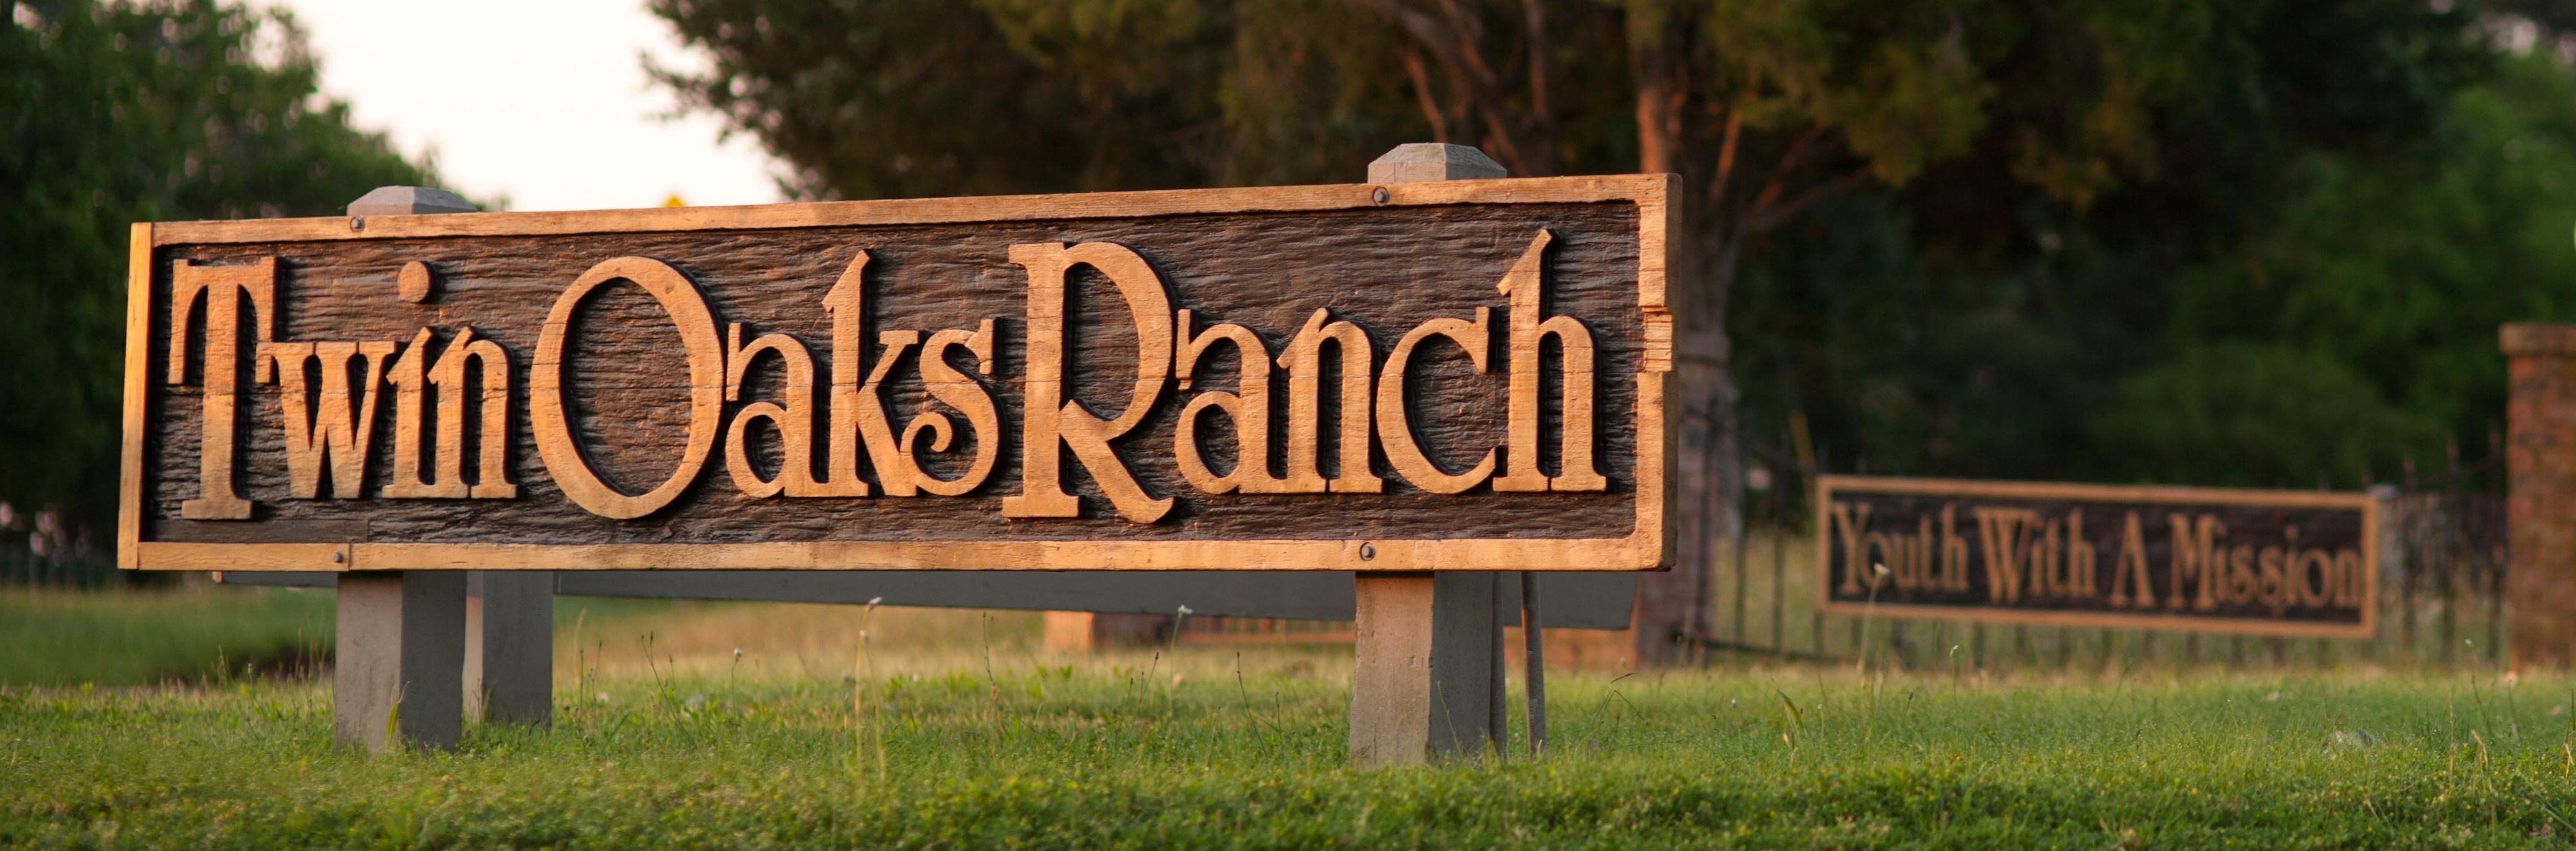 Twin Oaks Ranch 029-769252-edited.jpg